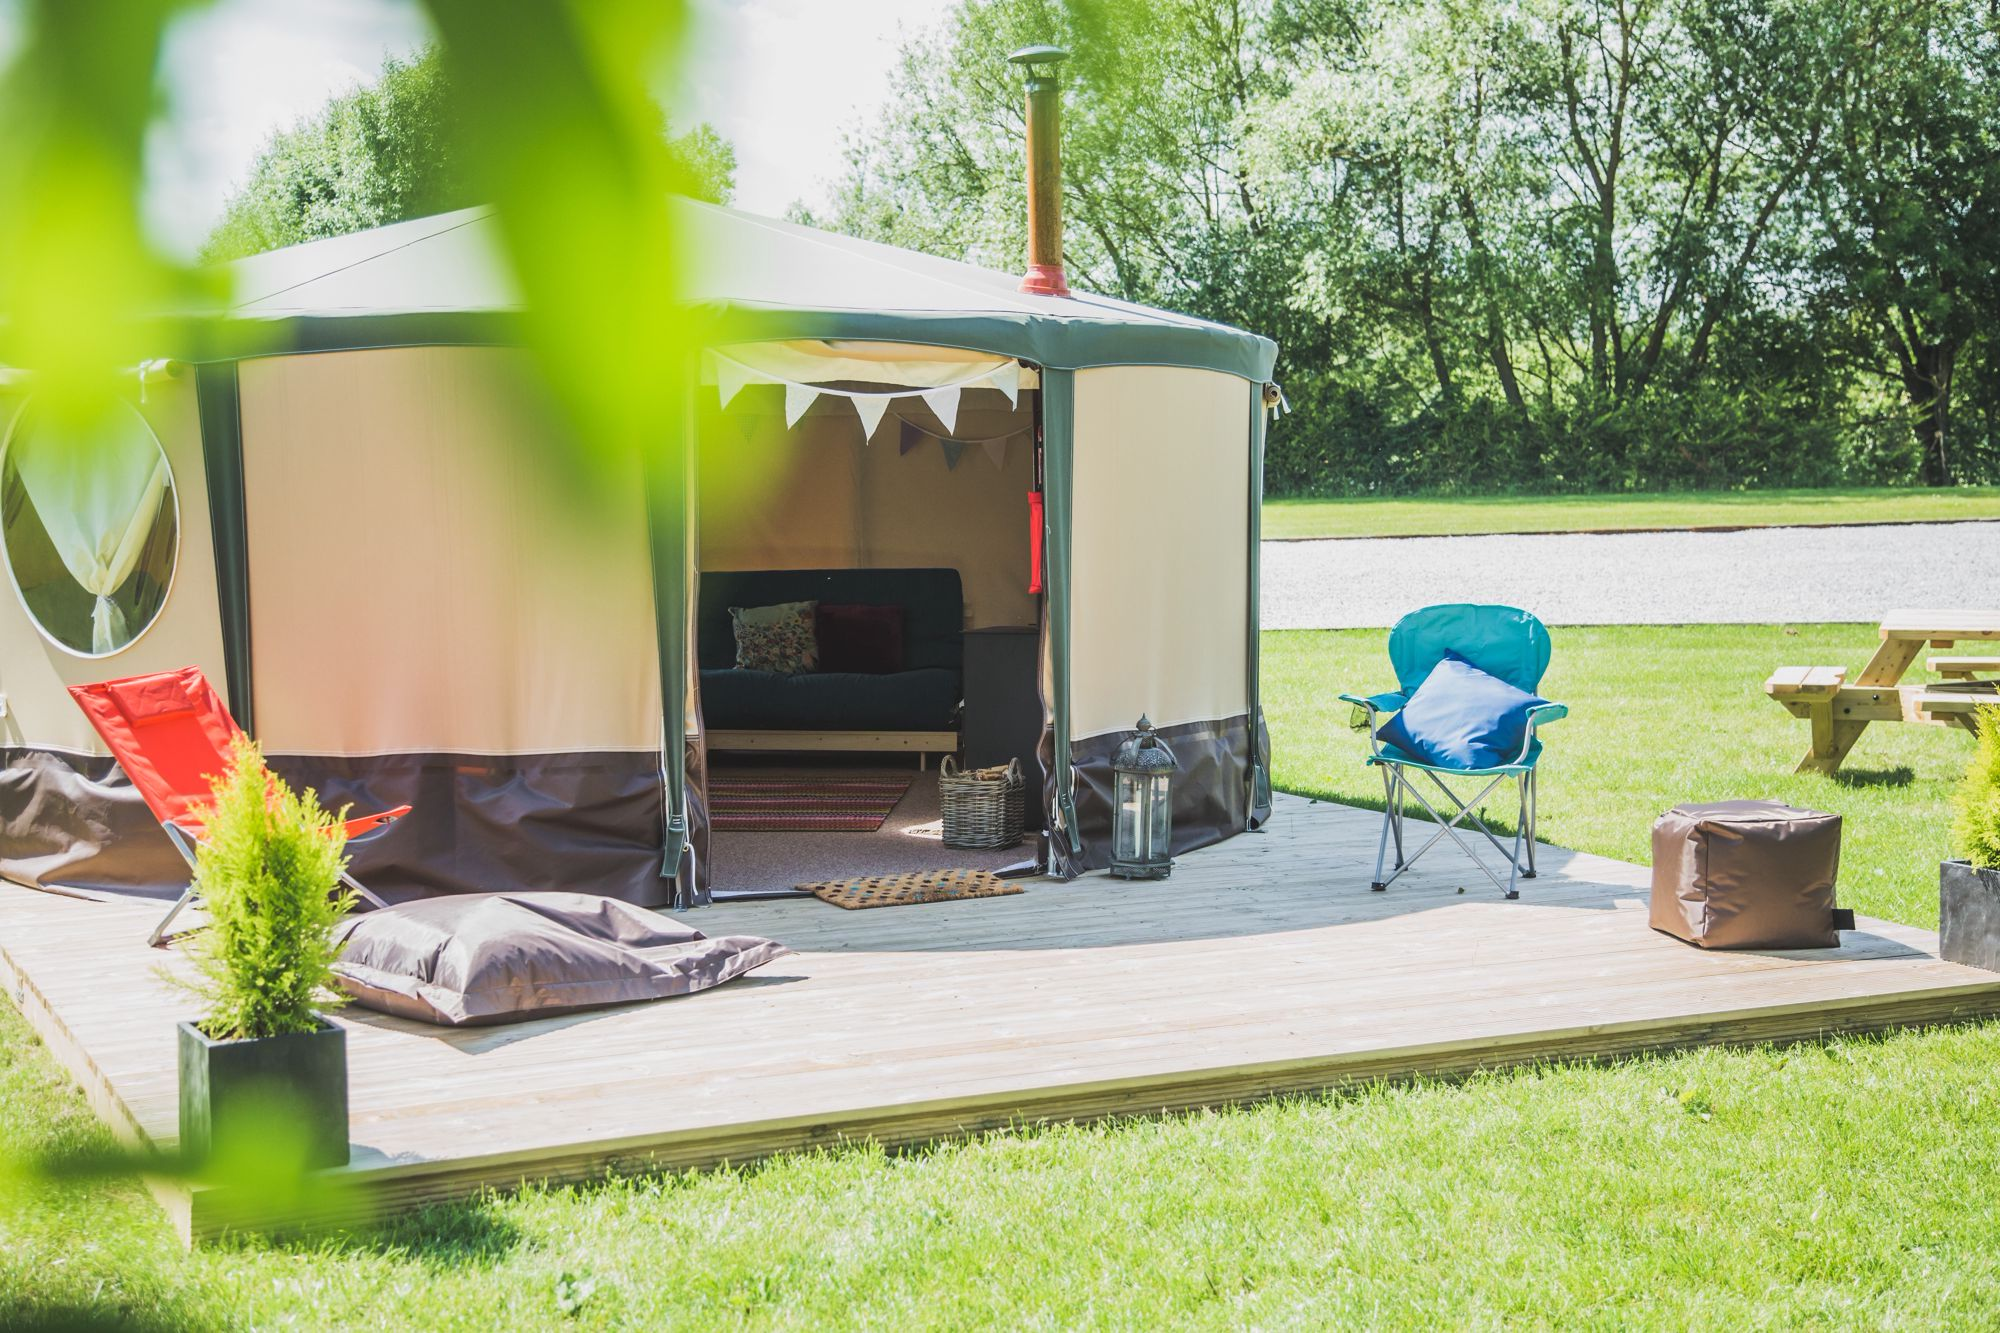 Glamping in North East England